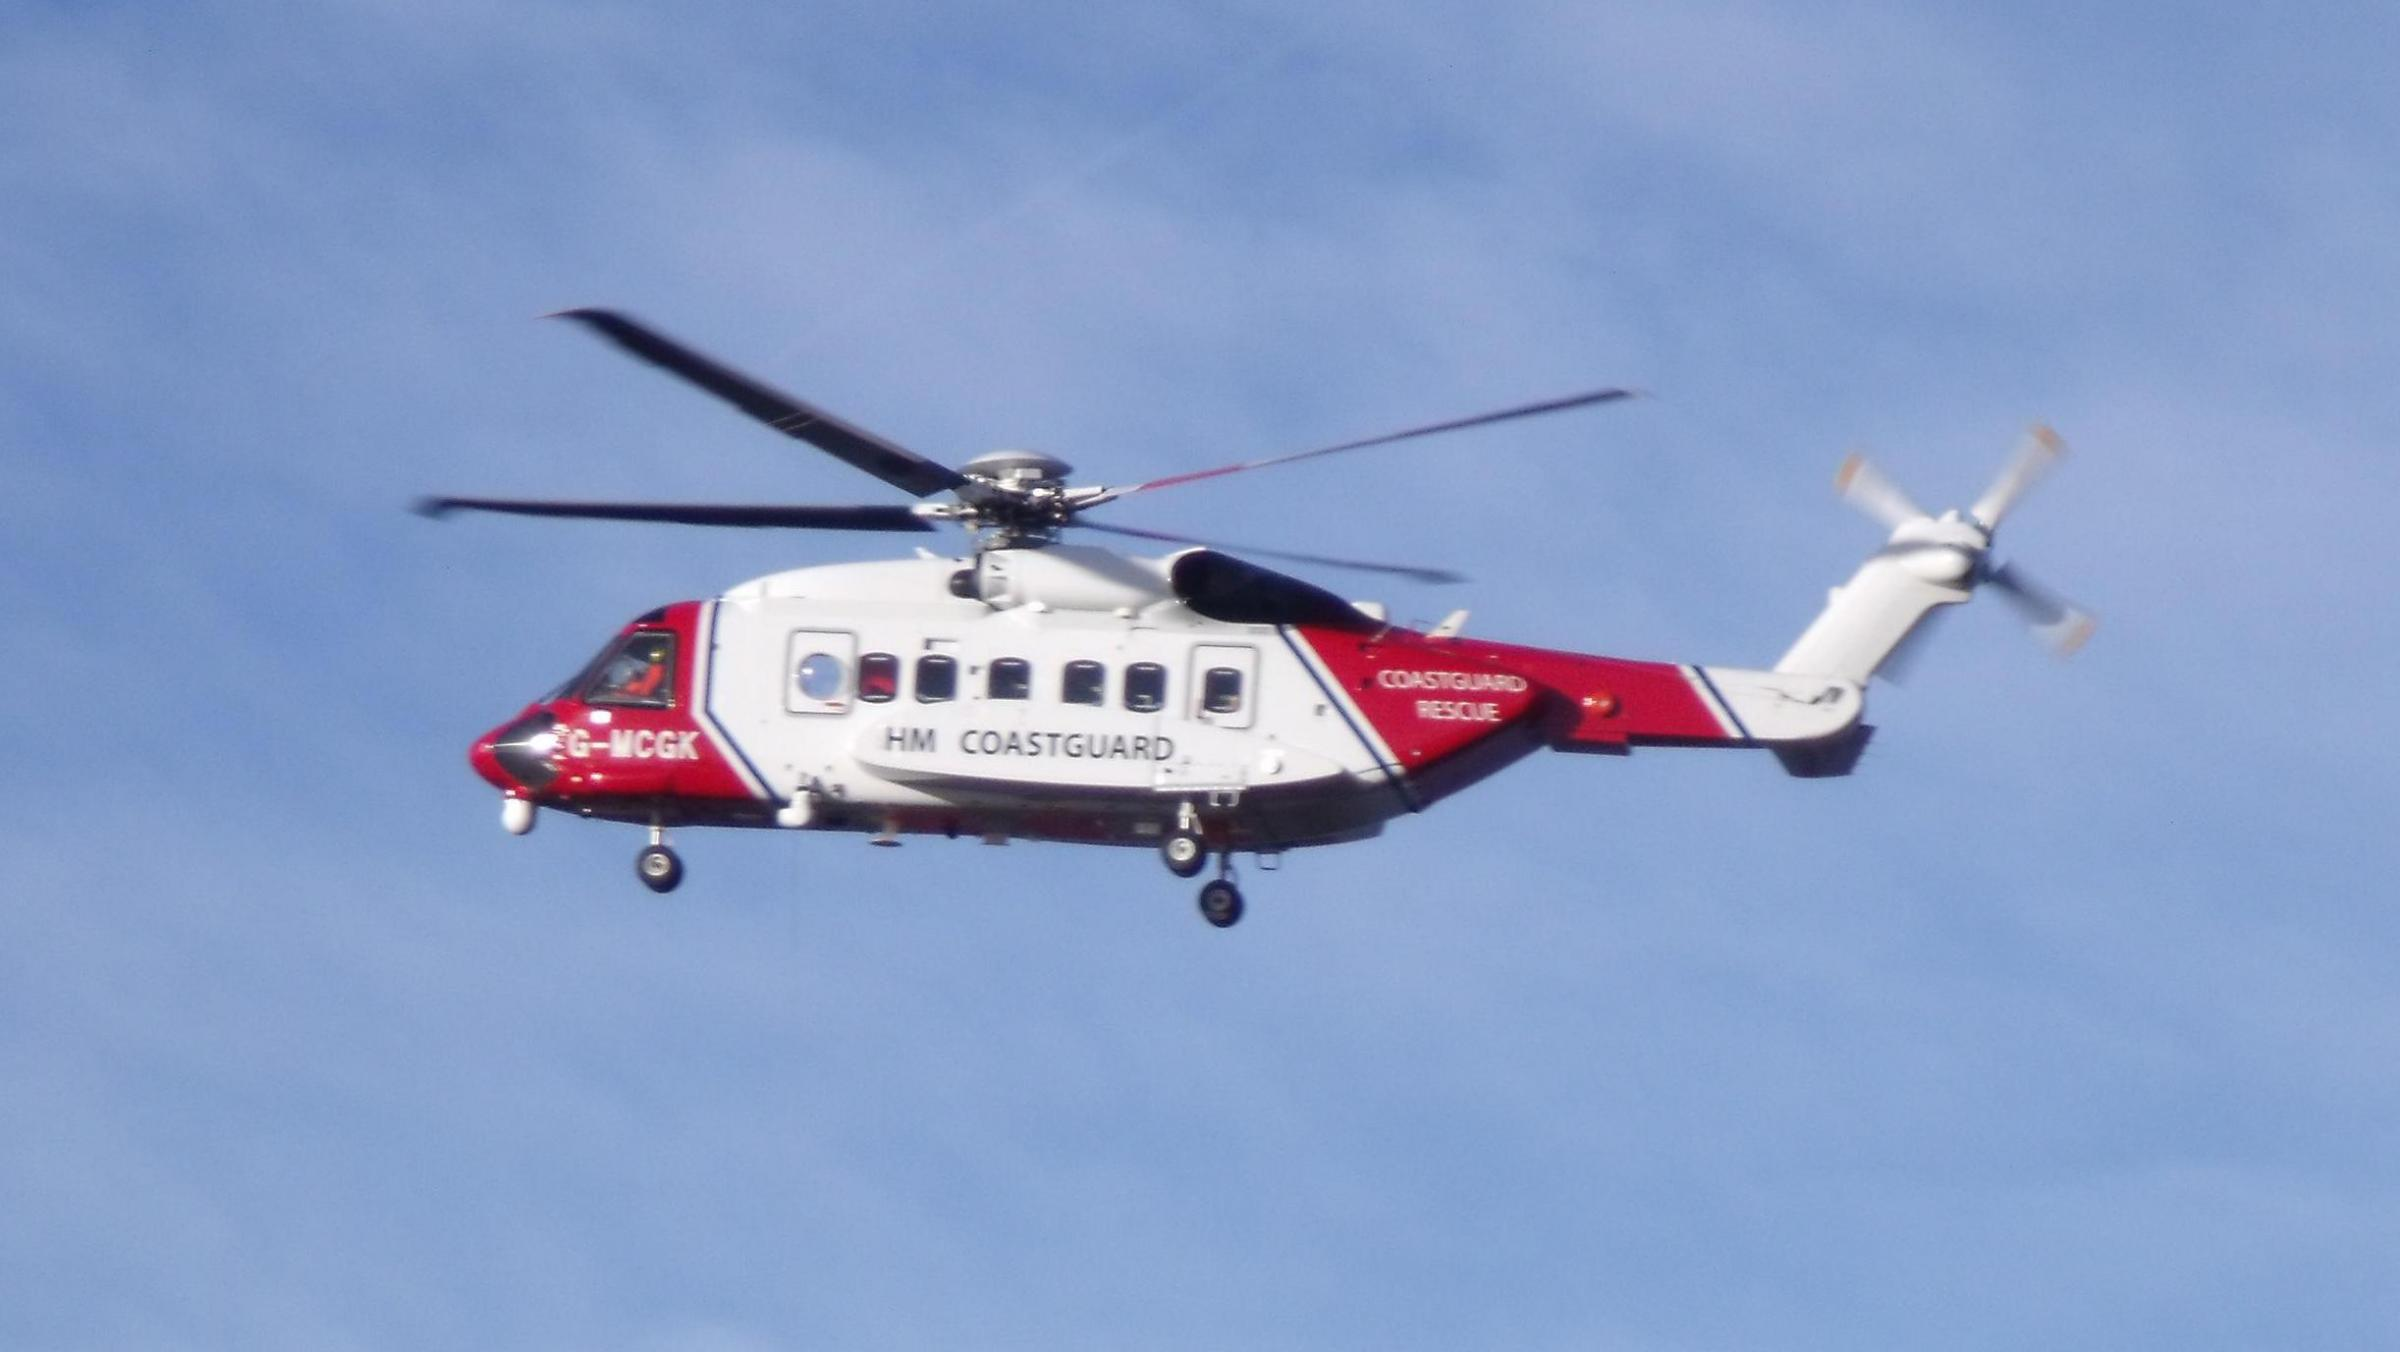 Coastguard helicopter rescues casualty from Great Orme